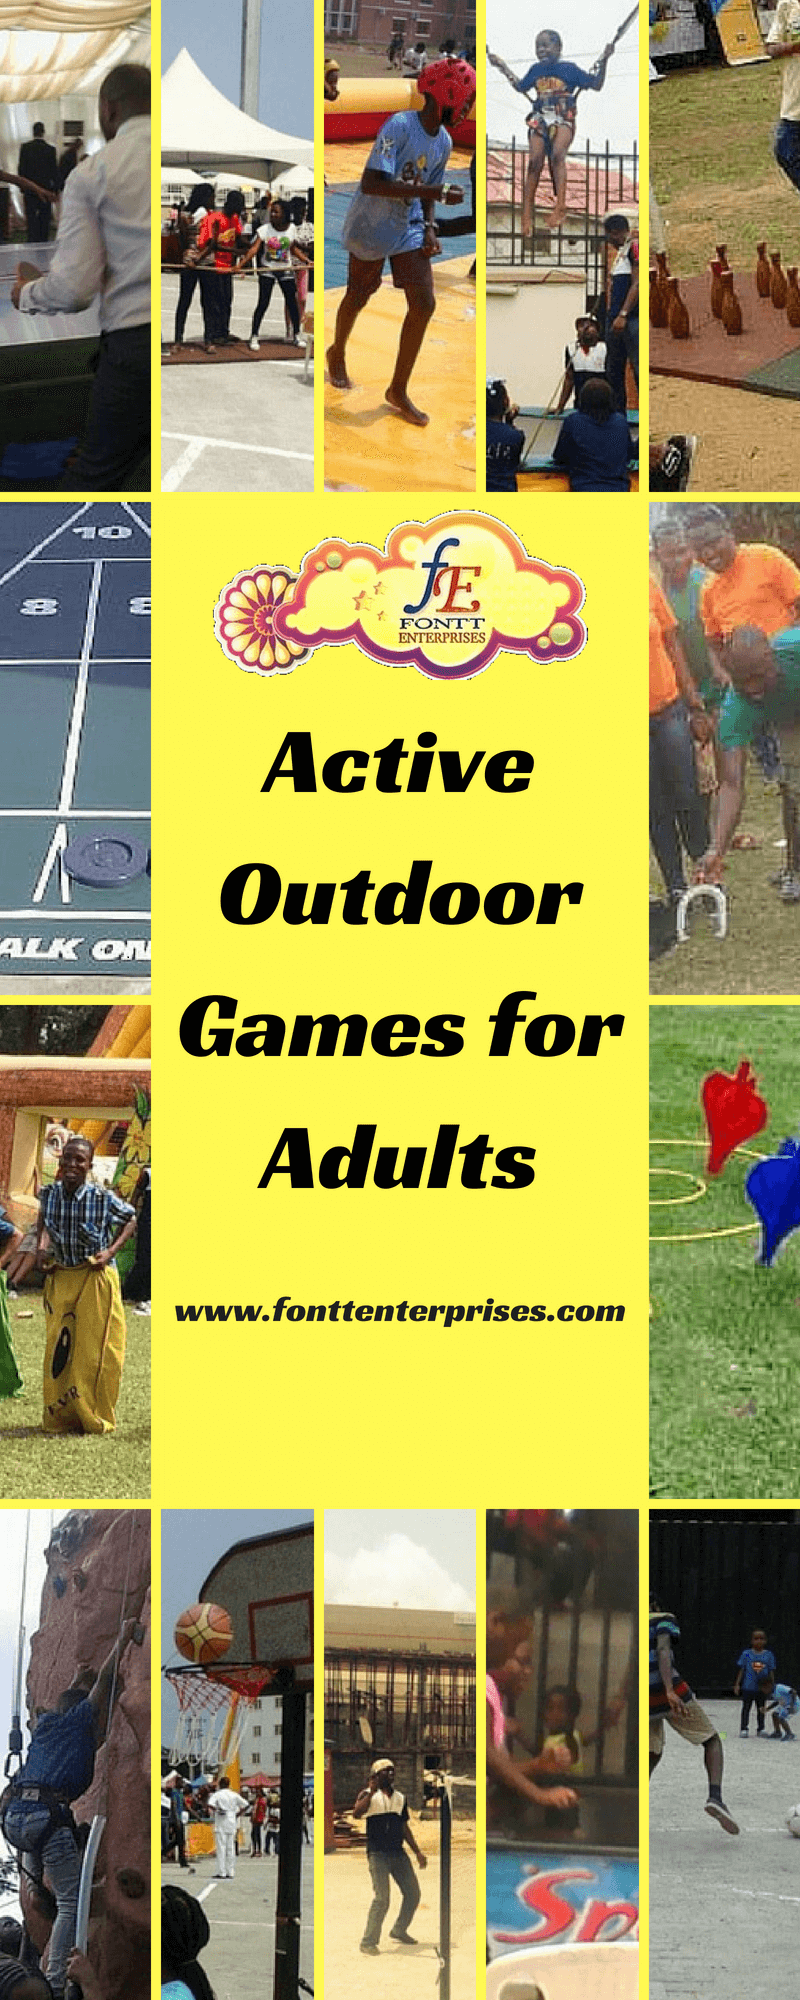 Active Outdoor Games for Adults Infographic